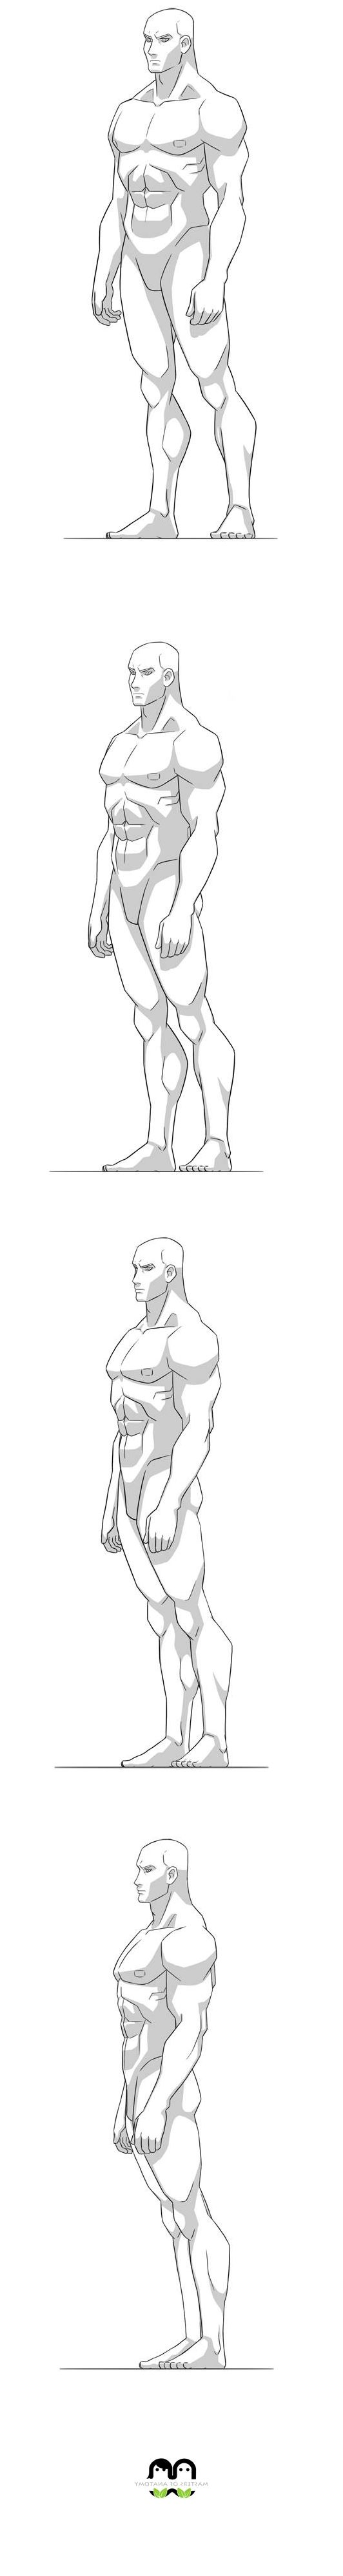 best ideas about man anatomy body reference masters of anatomy men anatomy anatomy purchase paypal character design referencestm design join mangaka asdf comicart